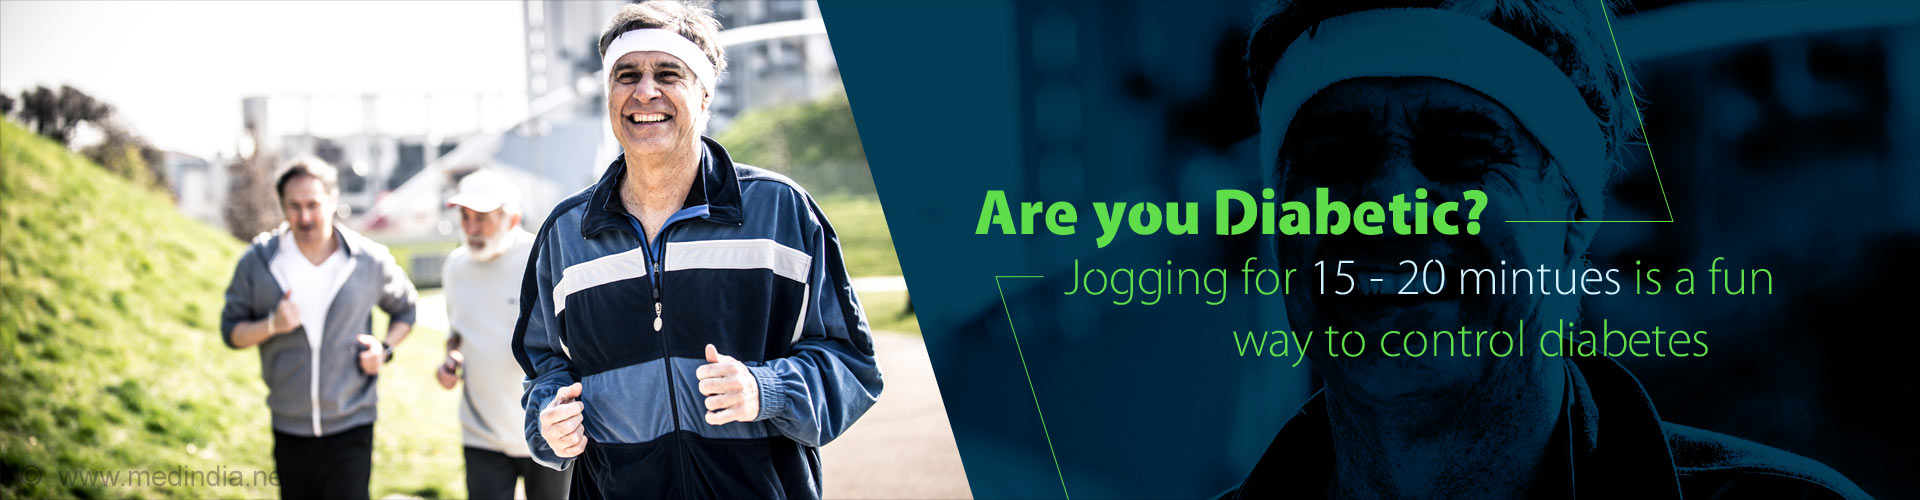 Are you Diabetic? Jogging for 15 minutes is a fun way to control diabetes.